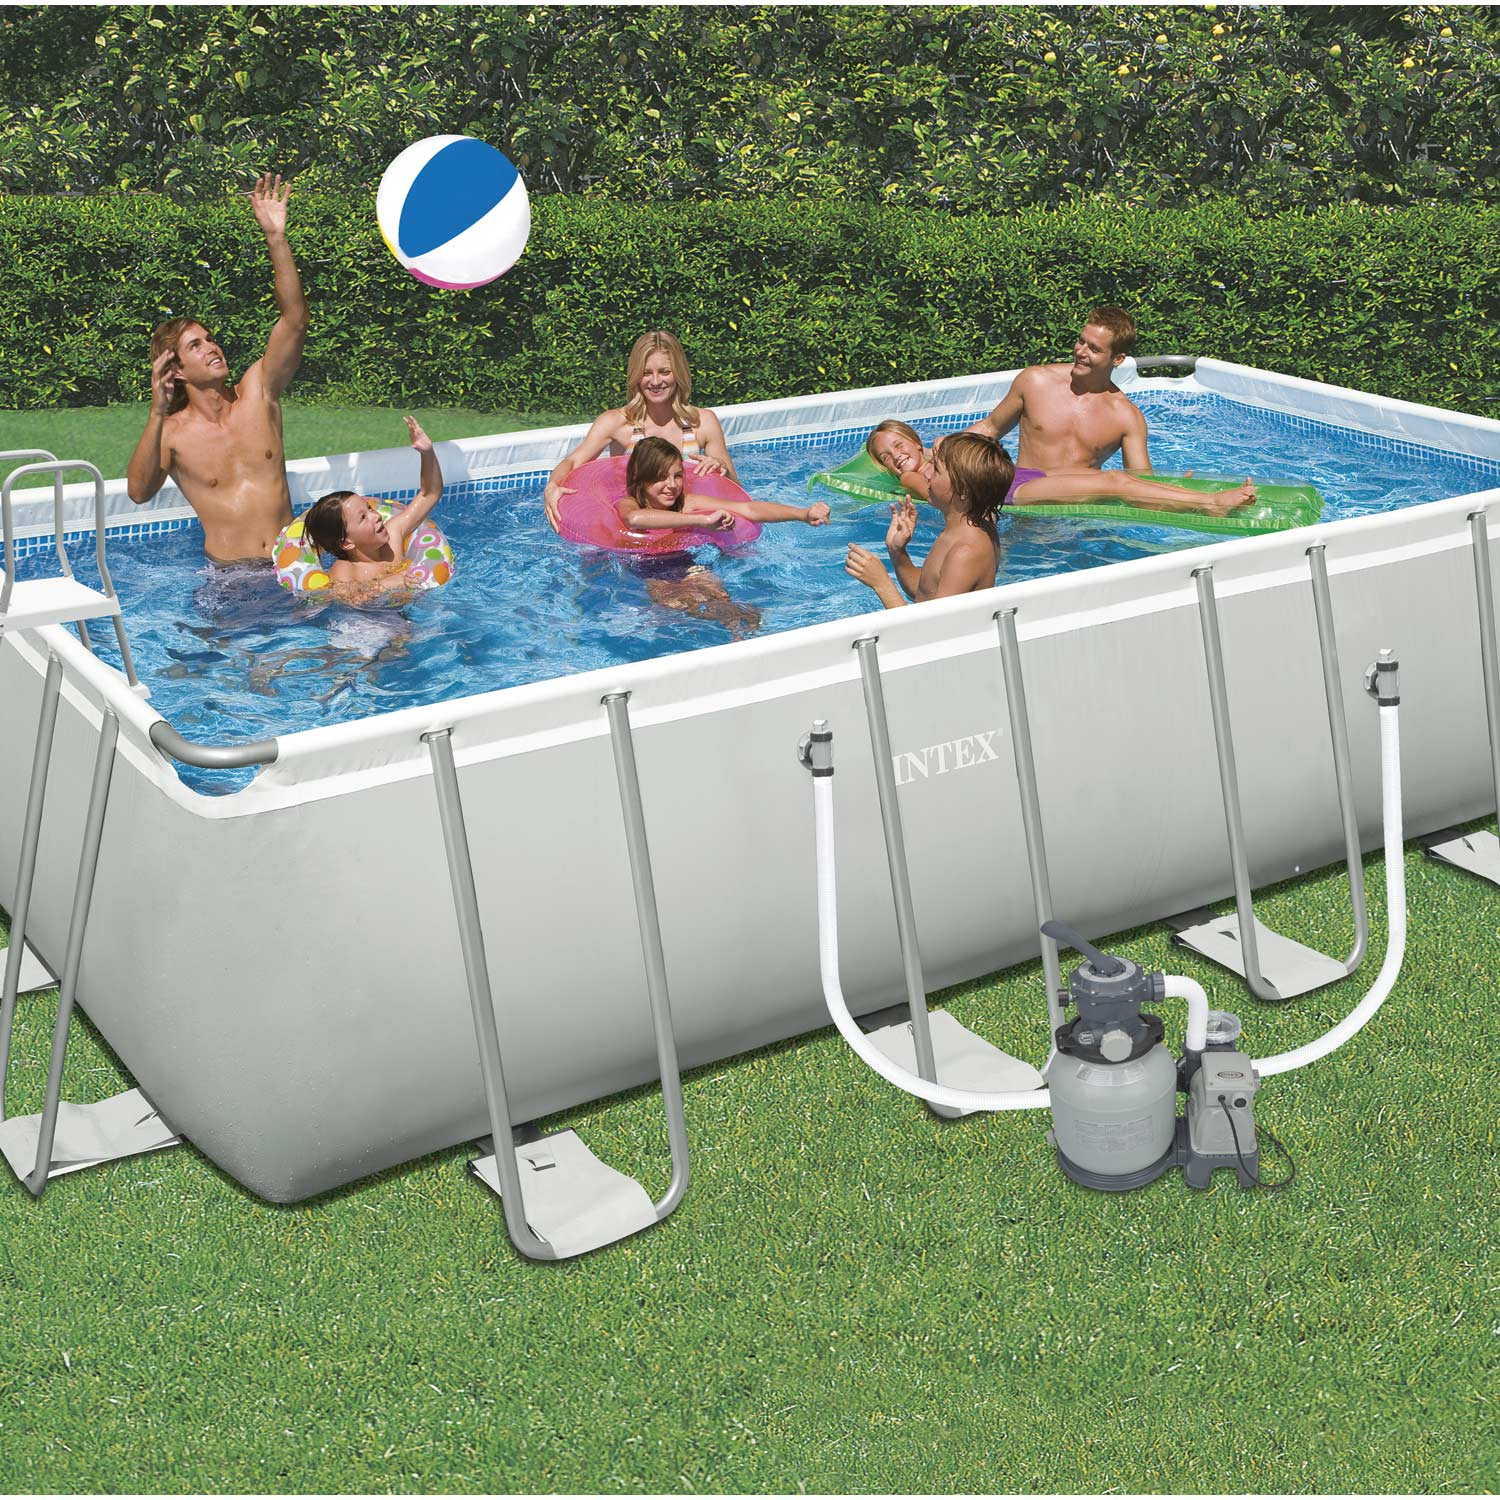 Piscine hors sol autoportante tubulaire ultra silver intex for Norme piscine hors sol